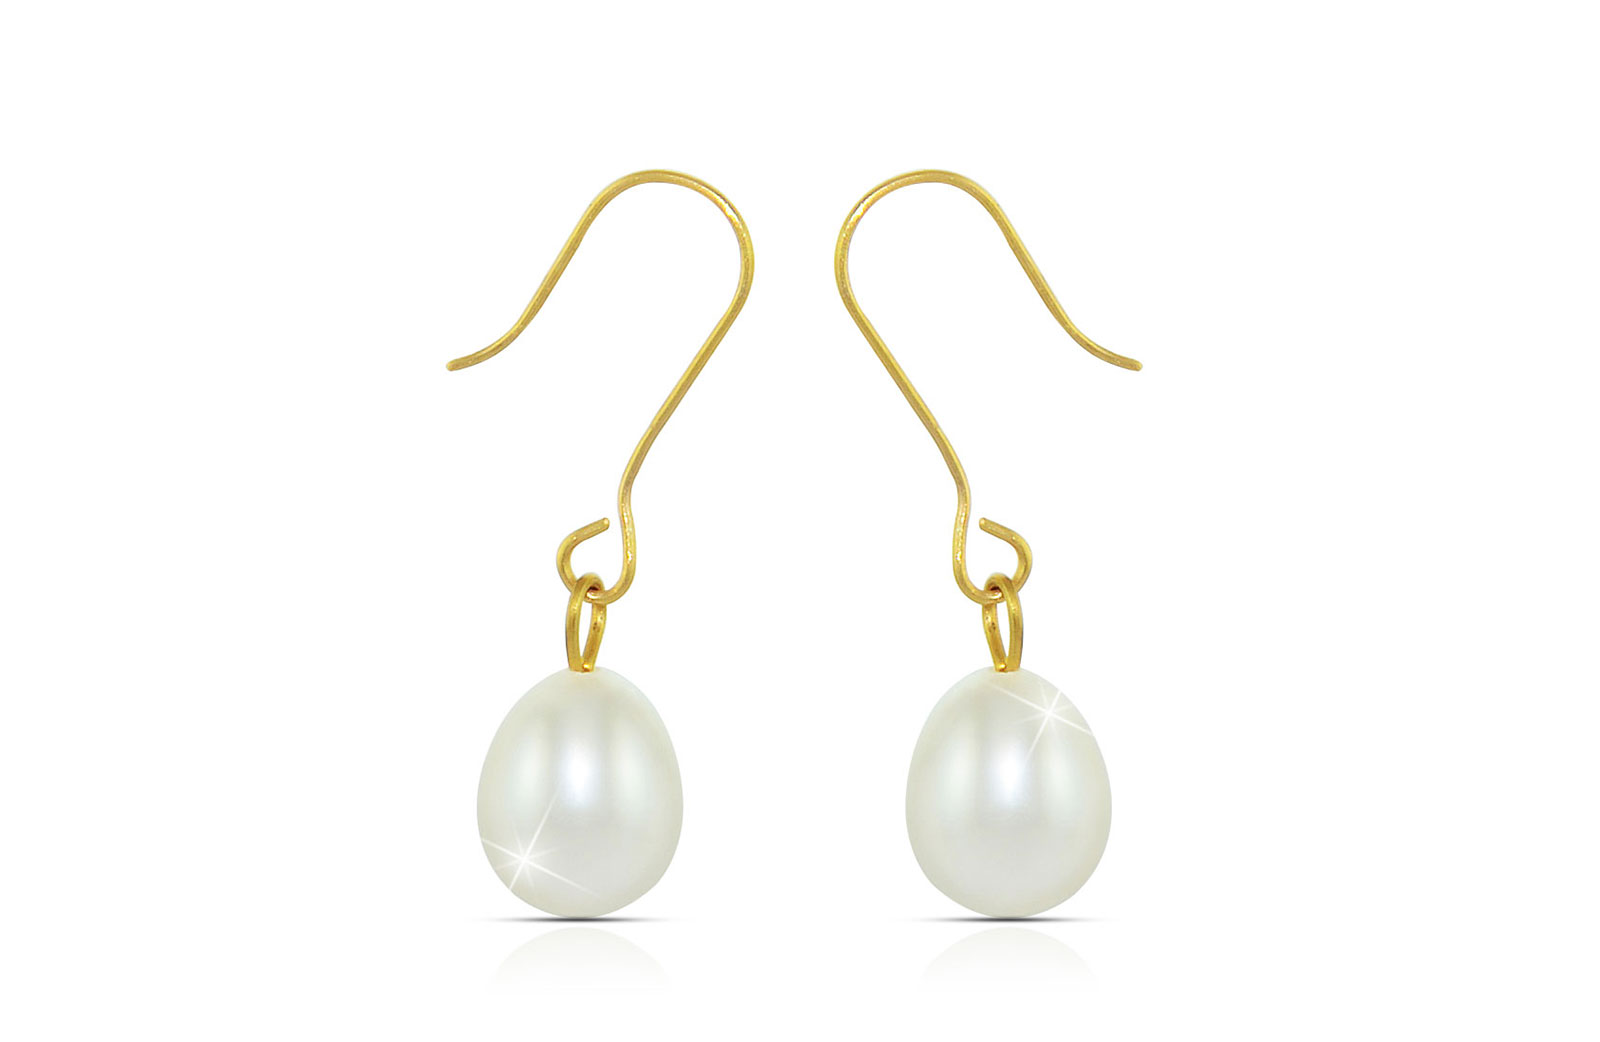 Vera Perla 10K Gold Genuine 7mm White Pearl Delicate Earrings